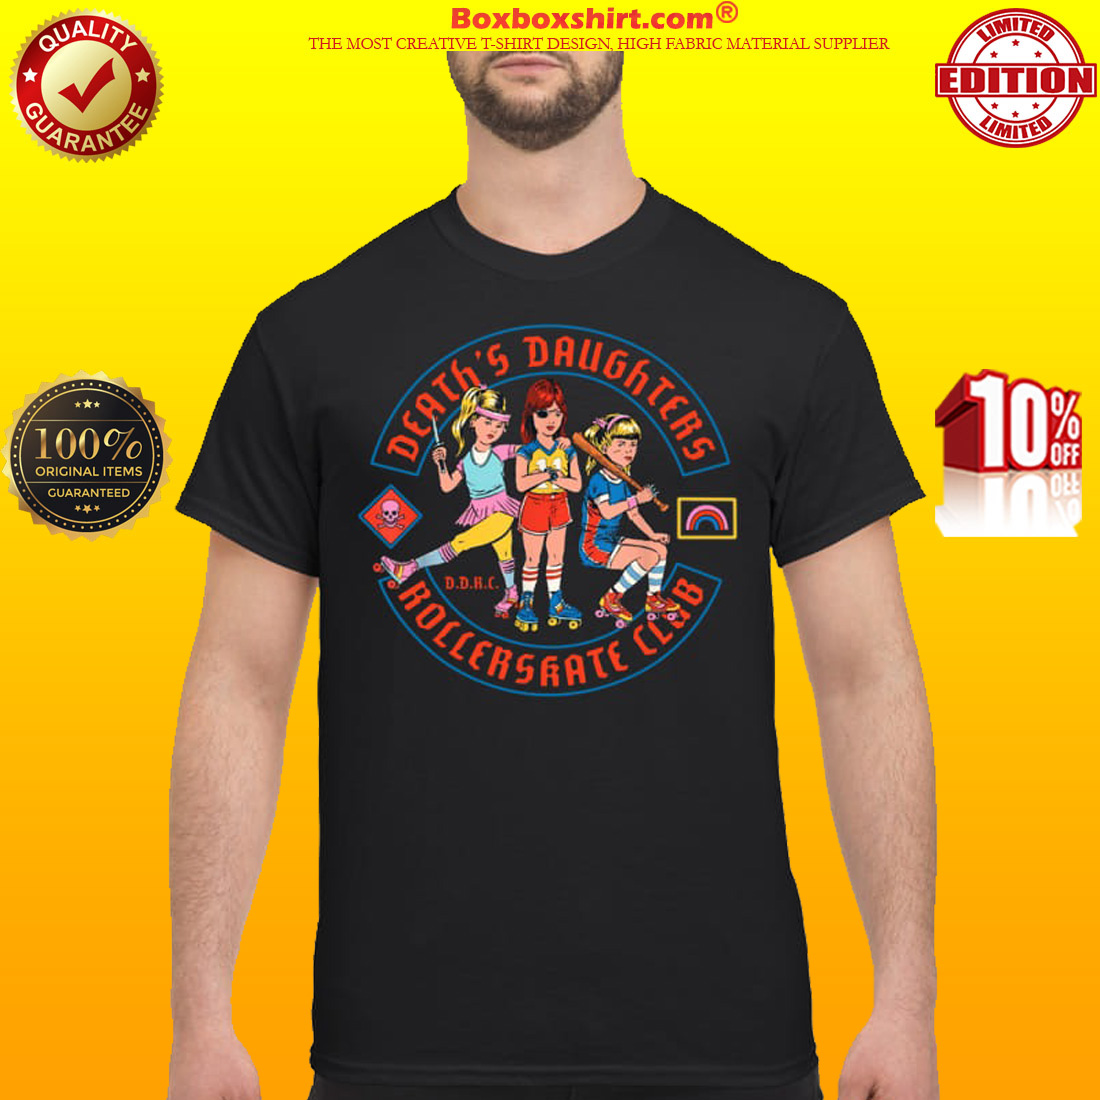 Death's daughters roller skate club classic shirt